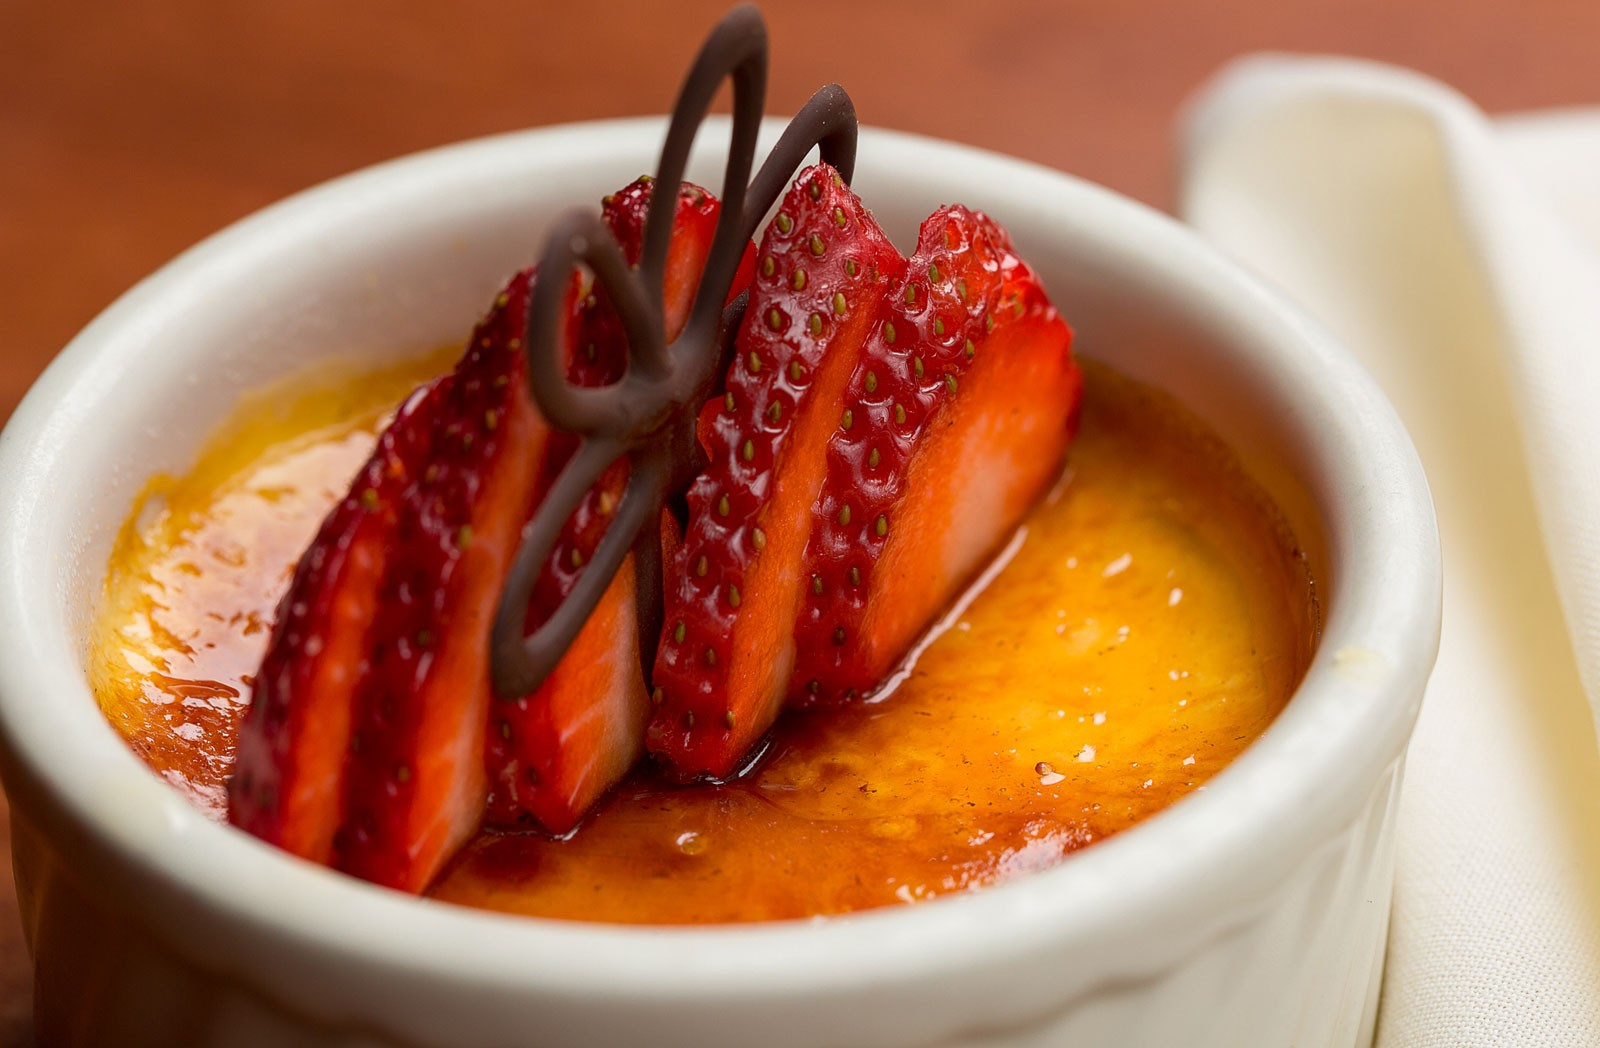 Olympic Peninsula, Waterfront Cuisine, Strawberries, Dessert, Chocolate